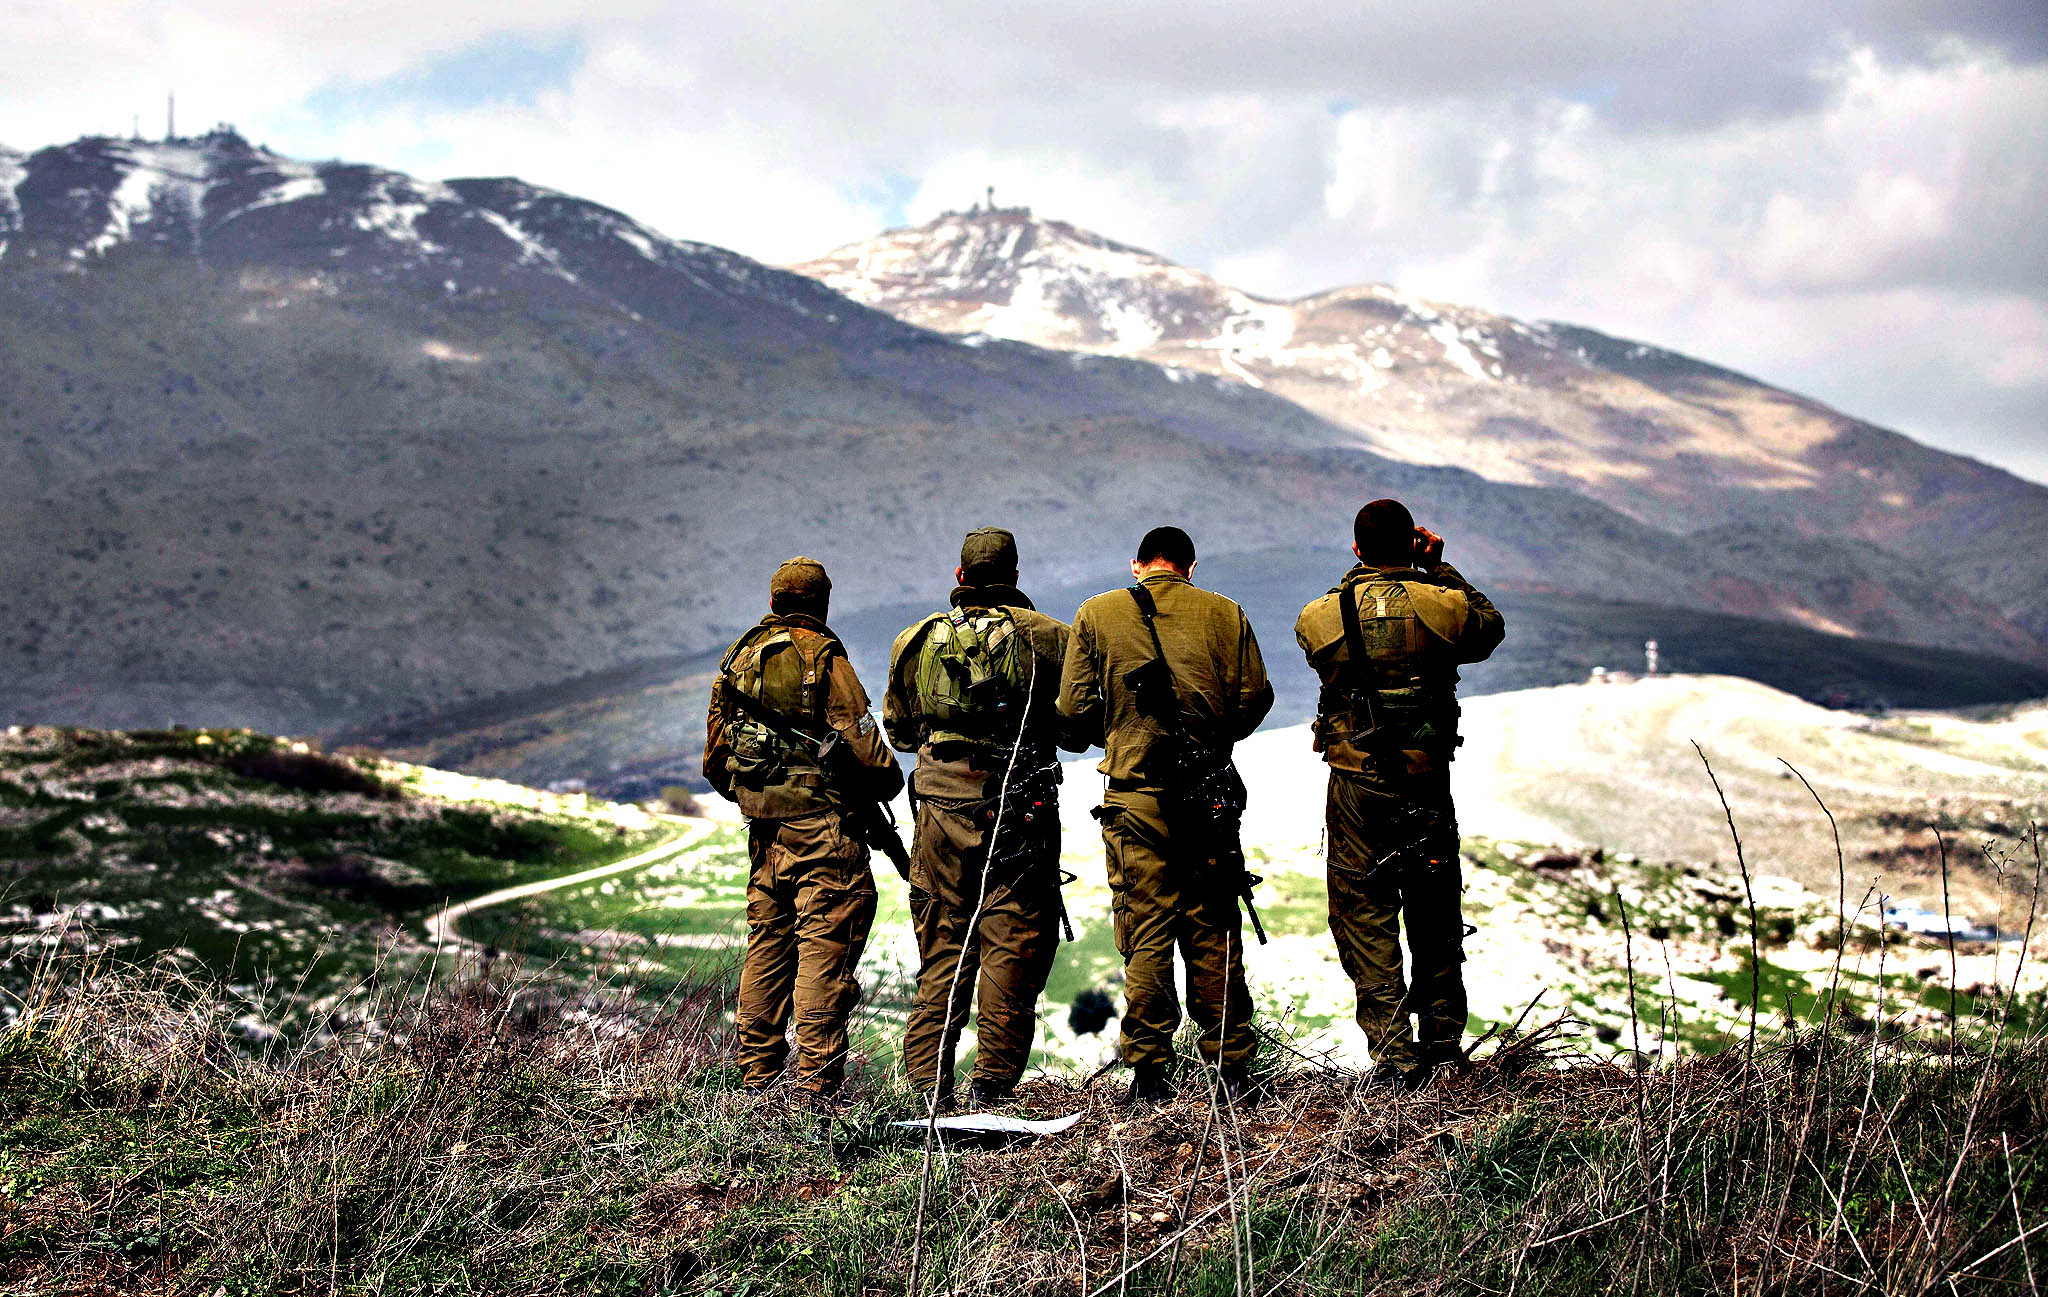 Israeli soldiers deployed on the border with Syria observe Syrian territory from Israeli side of the border near the Druze village of Majdal Shams on Wednesday in the Israeli-annexed Golan Heights. Israel launched air raids against Syrian army positions and issued a stark warning to Damascus just hours after a bomb on the occupied Golan Heights wounded four of its soldiers.